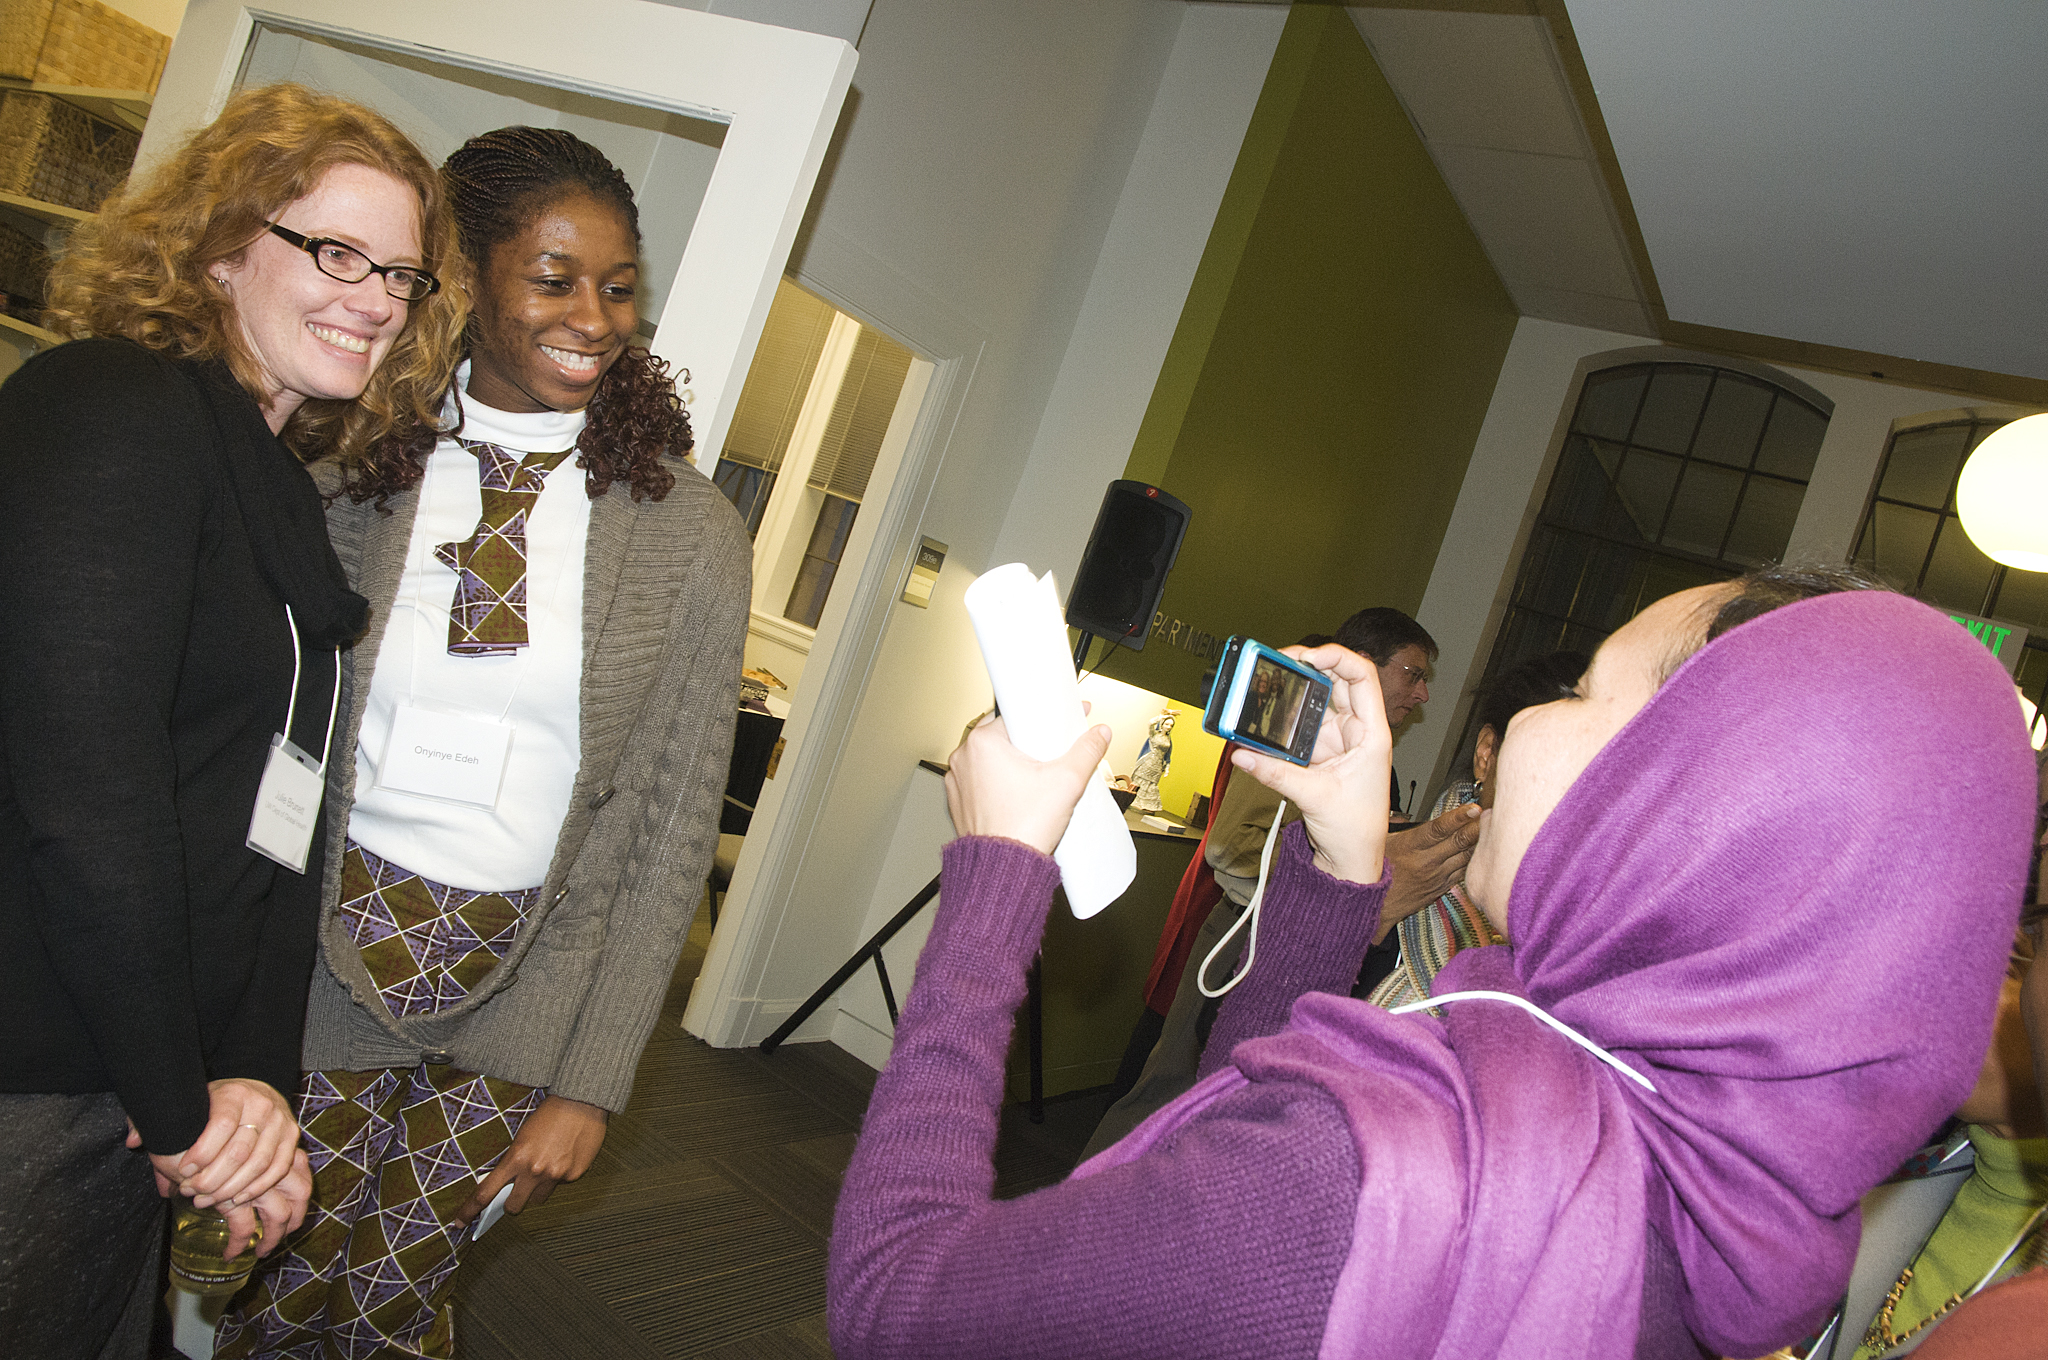 Amel Omer, a public health student from Sudan, photographs graduate student adviser Julie Burnett and Oninye Edeh, a fellow student from Nigeria at the Department of Global Health Open House.